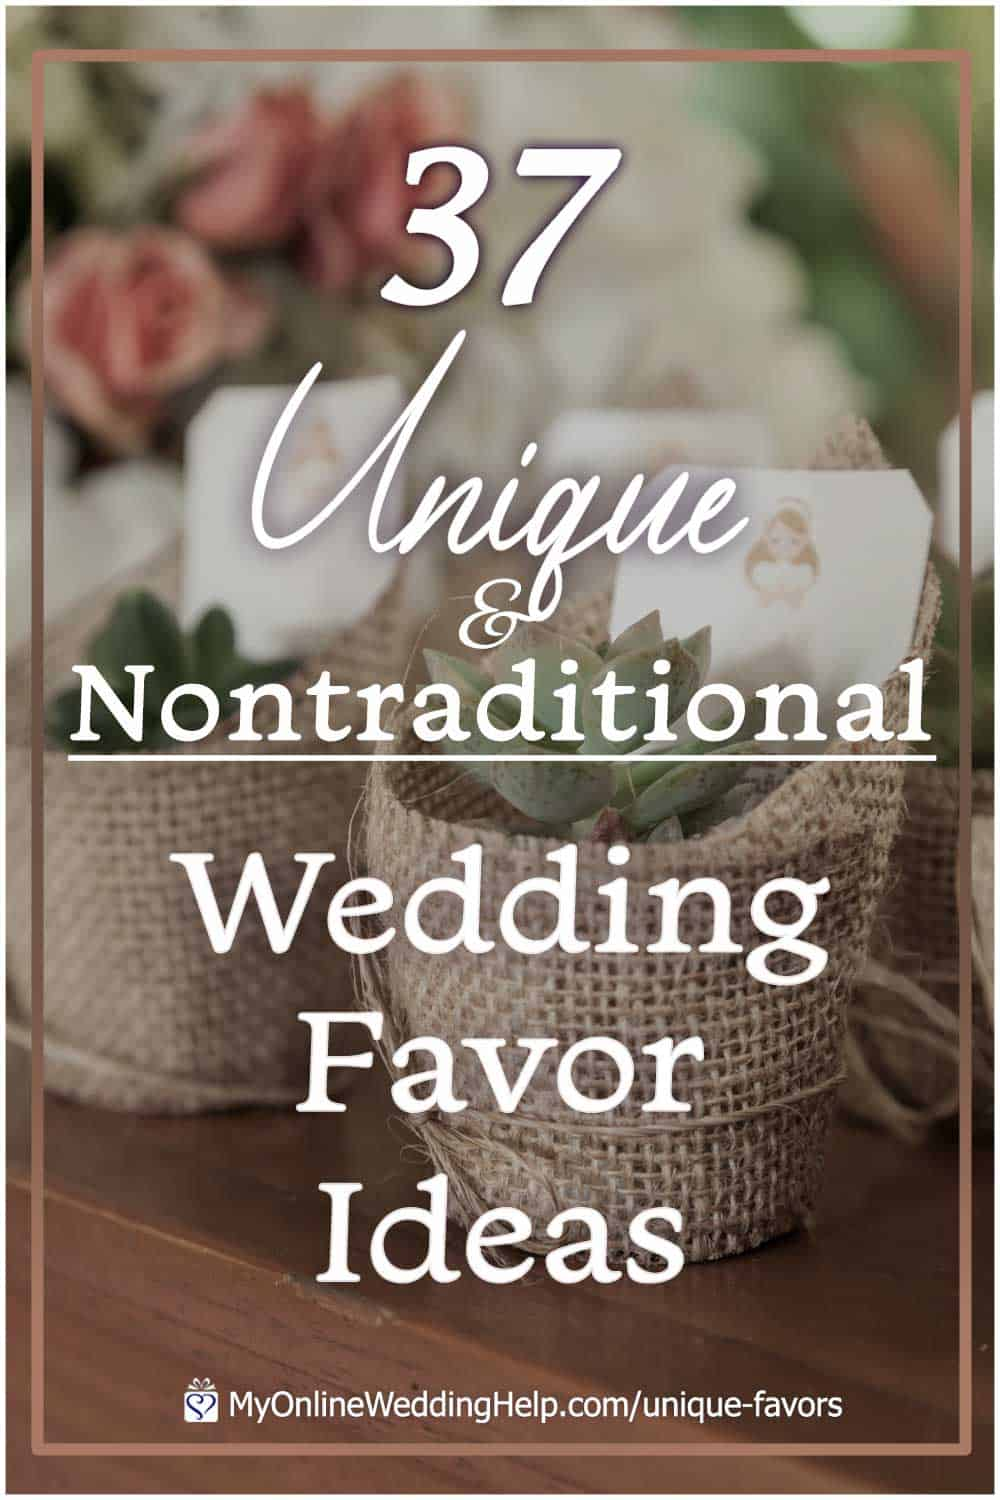 37 Unique Nontraditional Wedding Favor Ideas